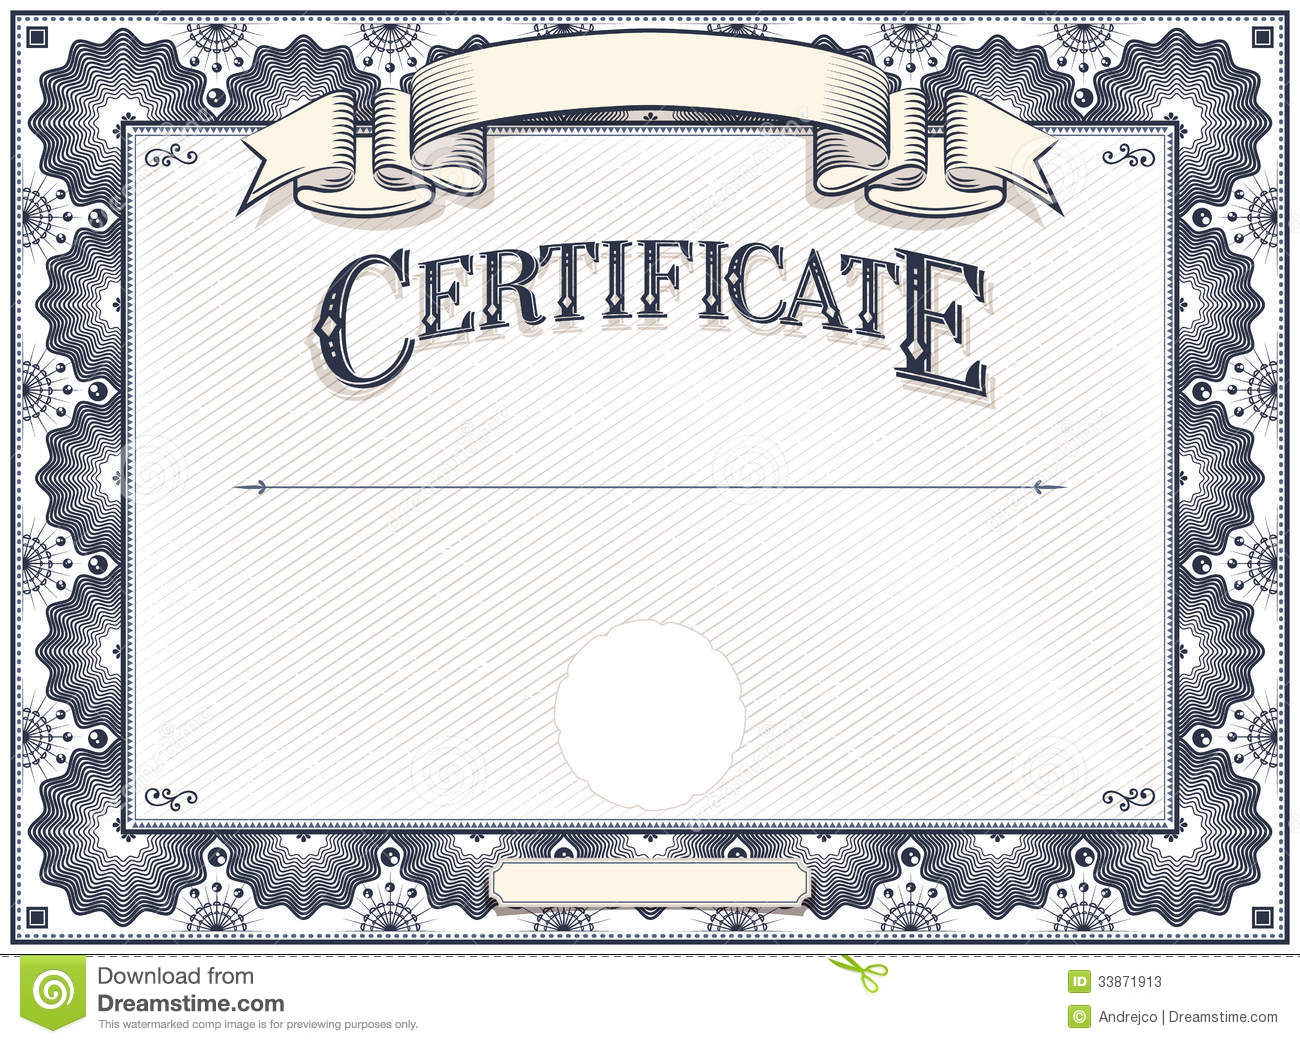 Plantilla del certificado o del diploma fotos de archivo for Cross country certificate templates free